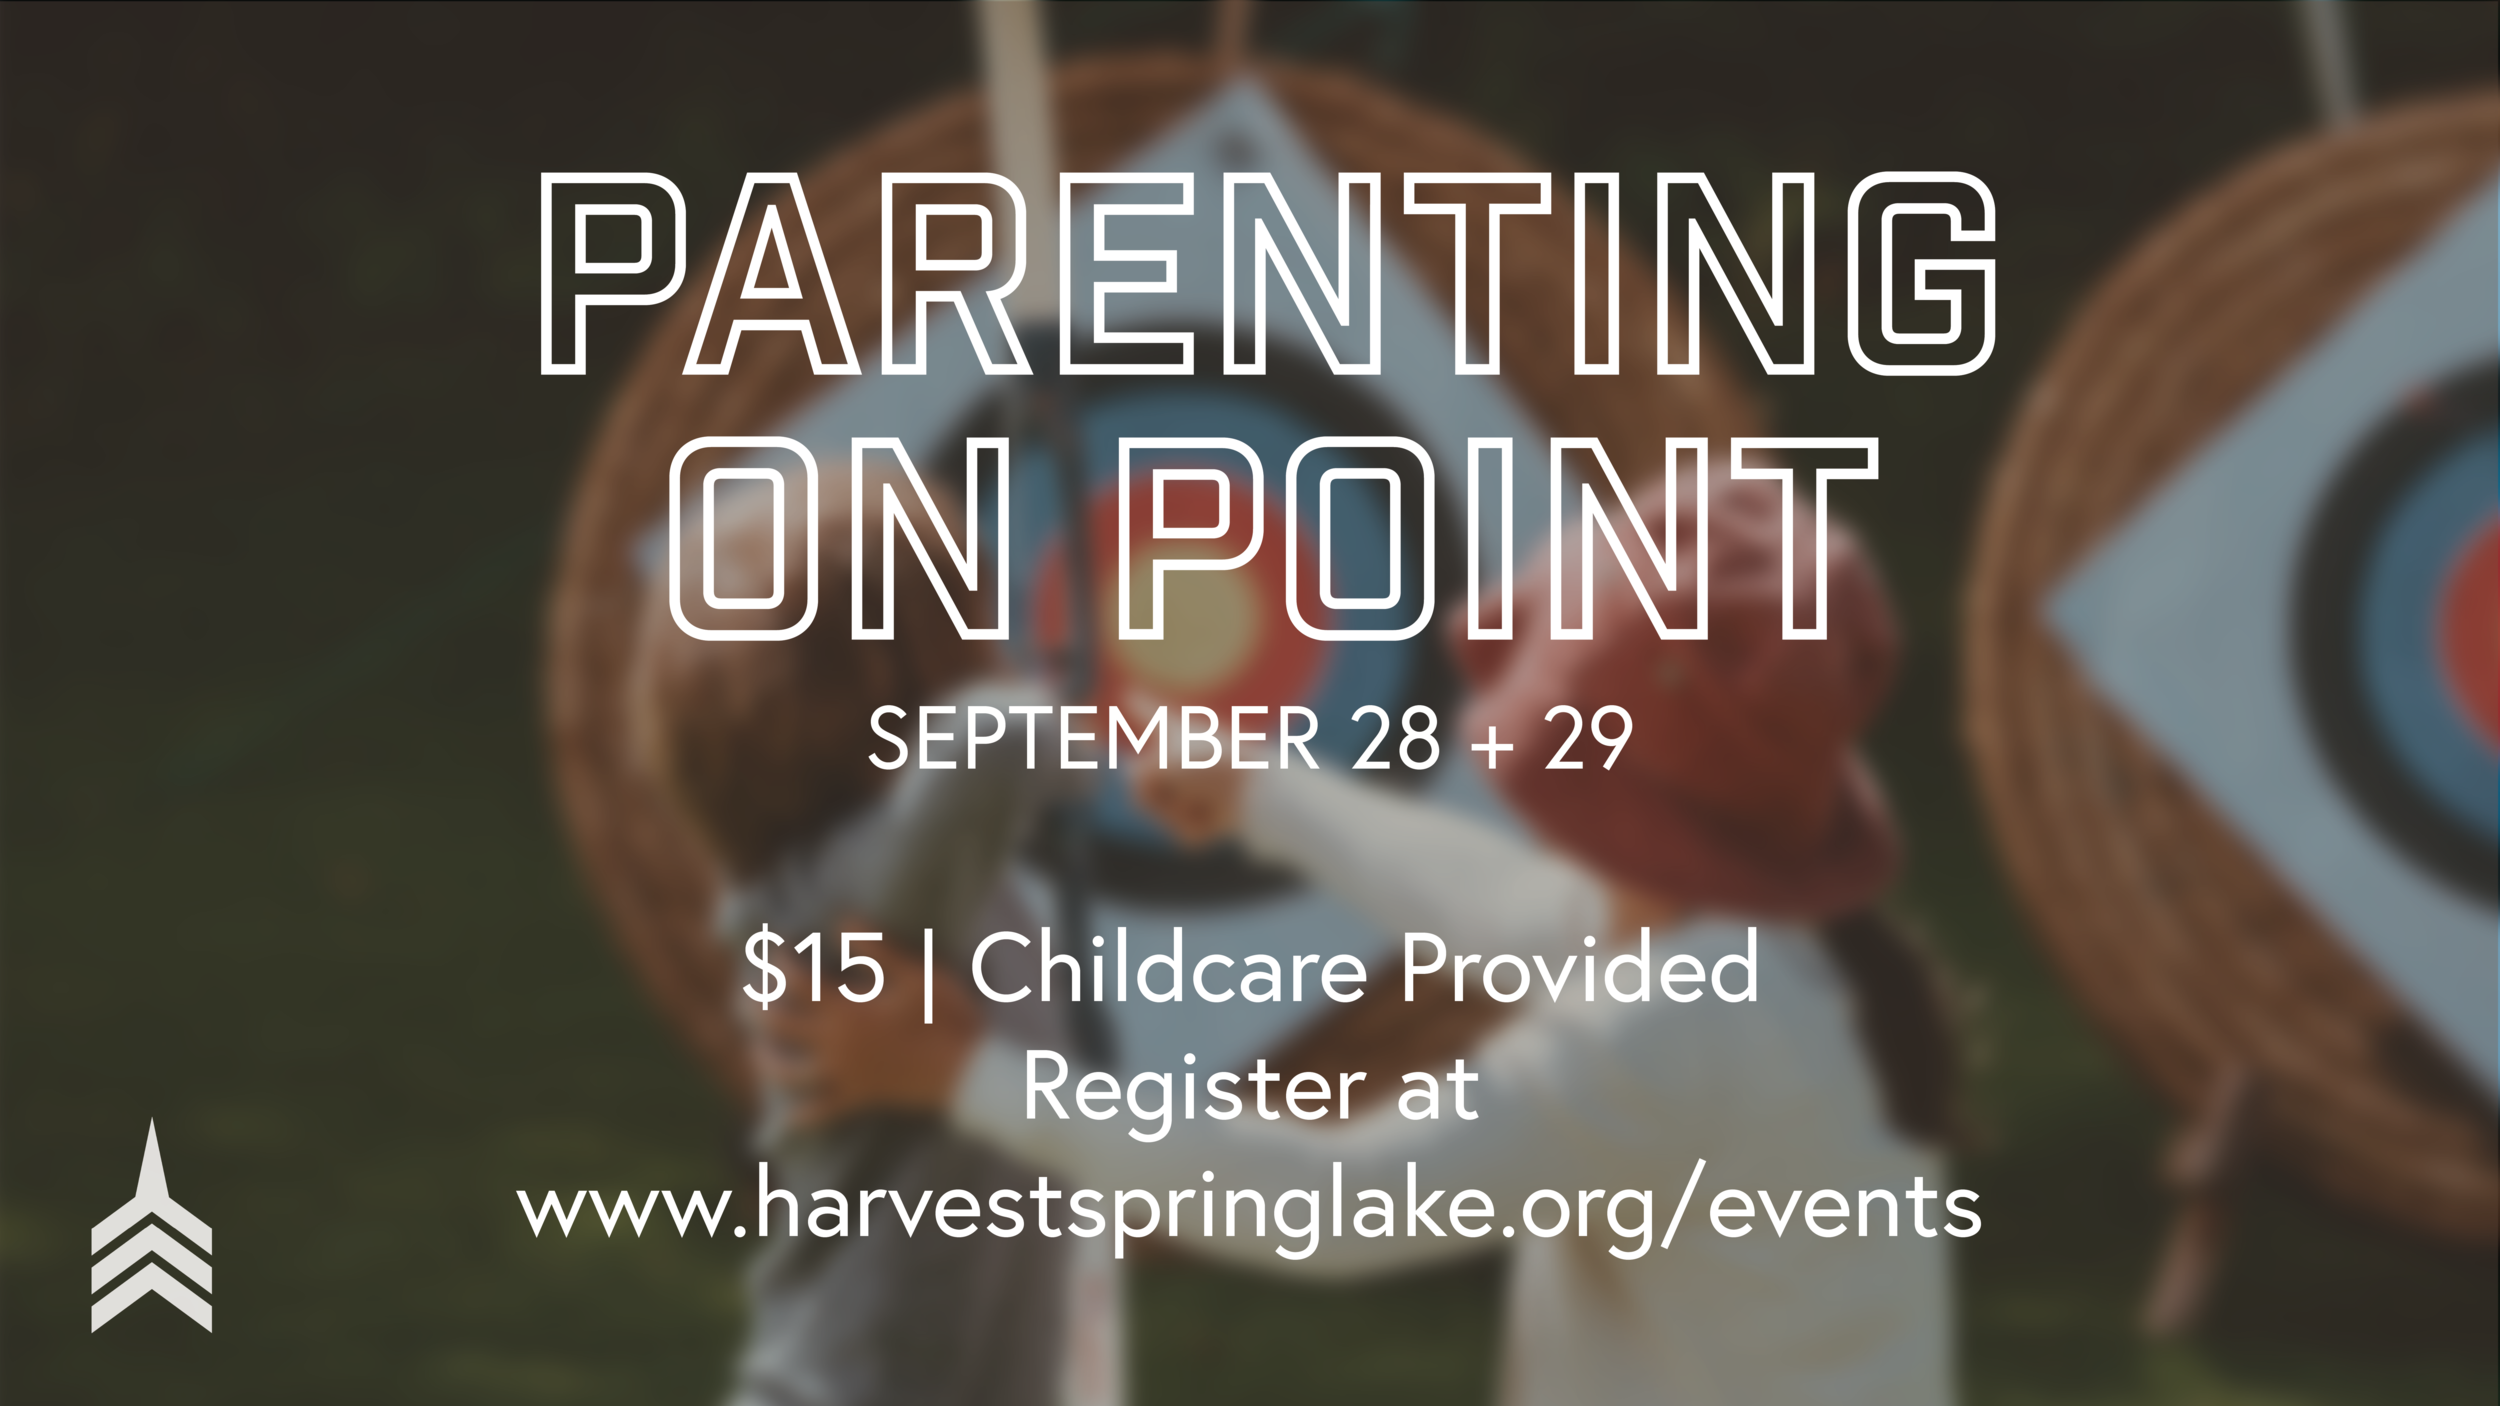 Parenting Conference 2018_Social Media Promo.png